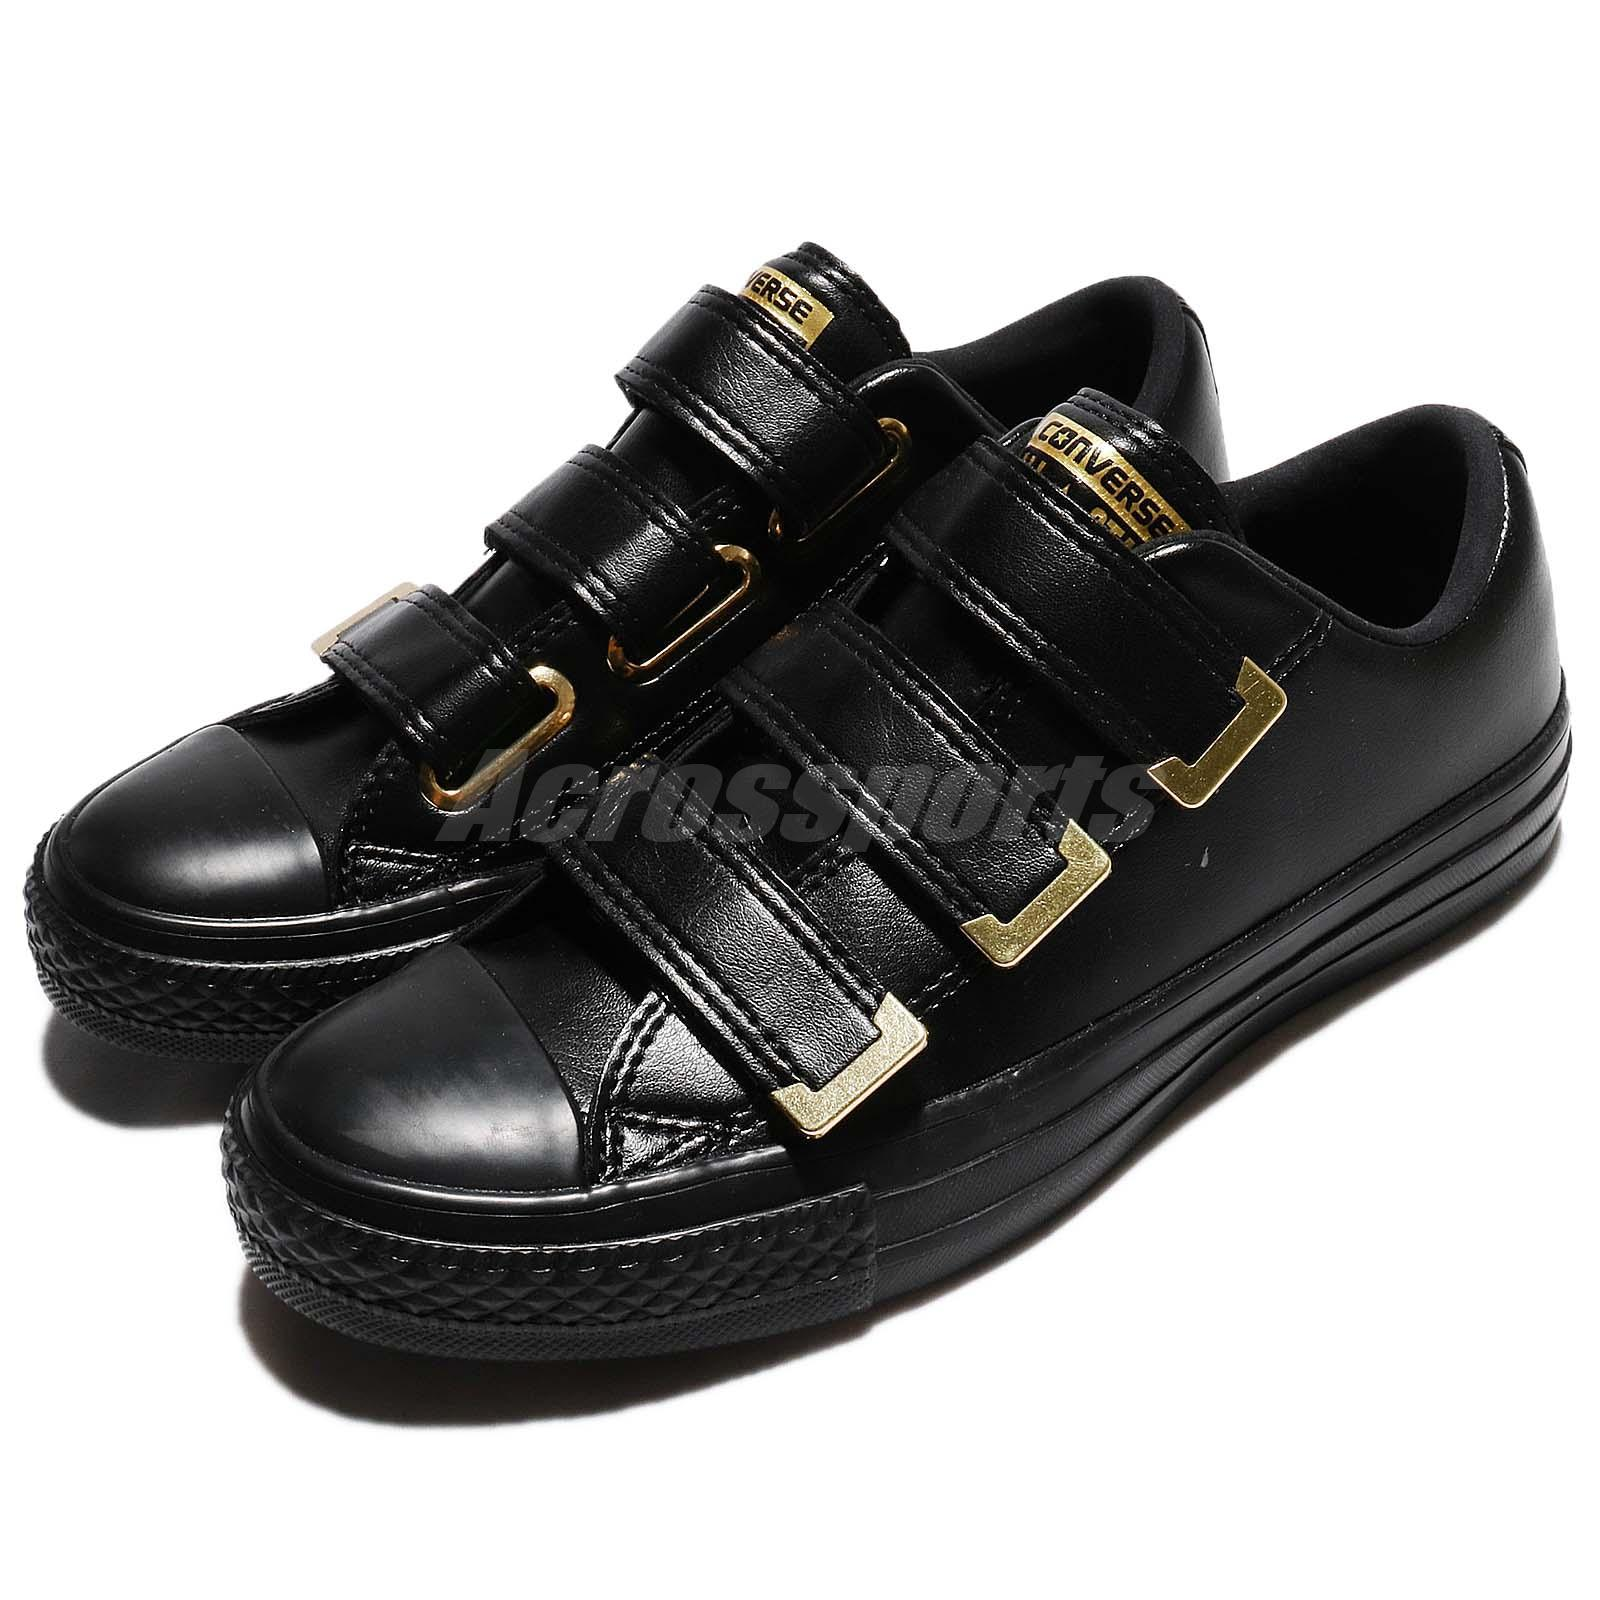 Converse Chuck Taylor All Star 3V Low Strap Black Gold Women Shoes 559906C